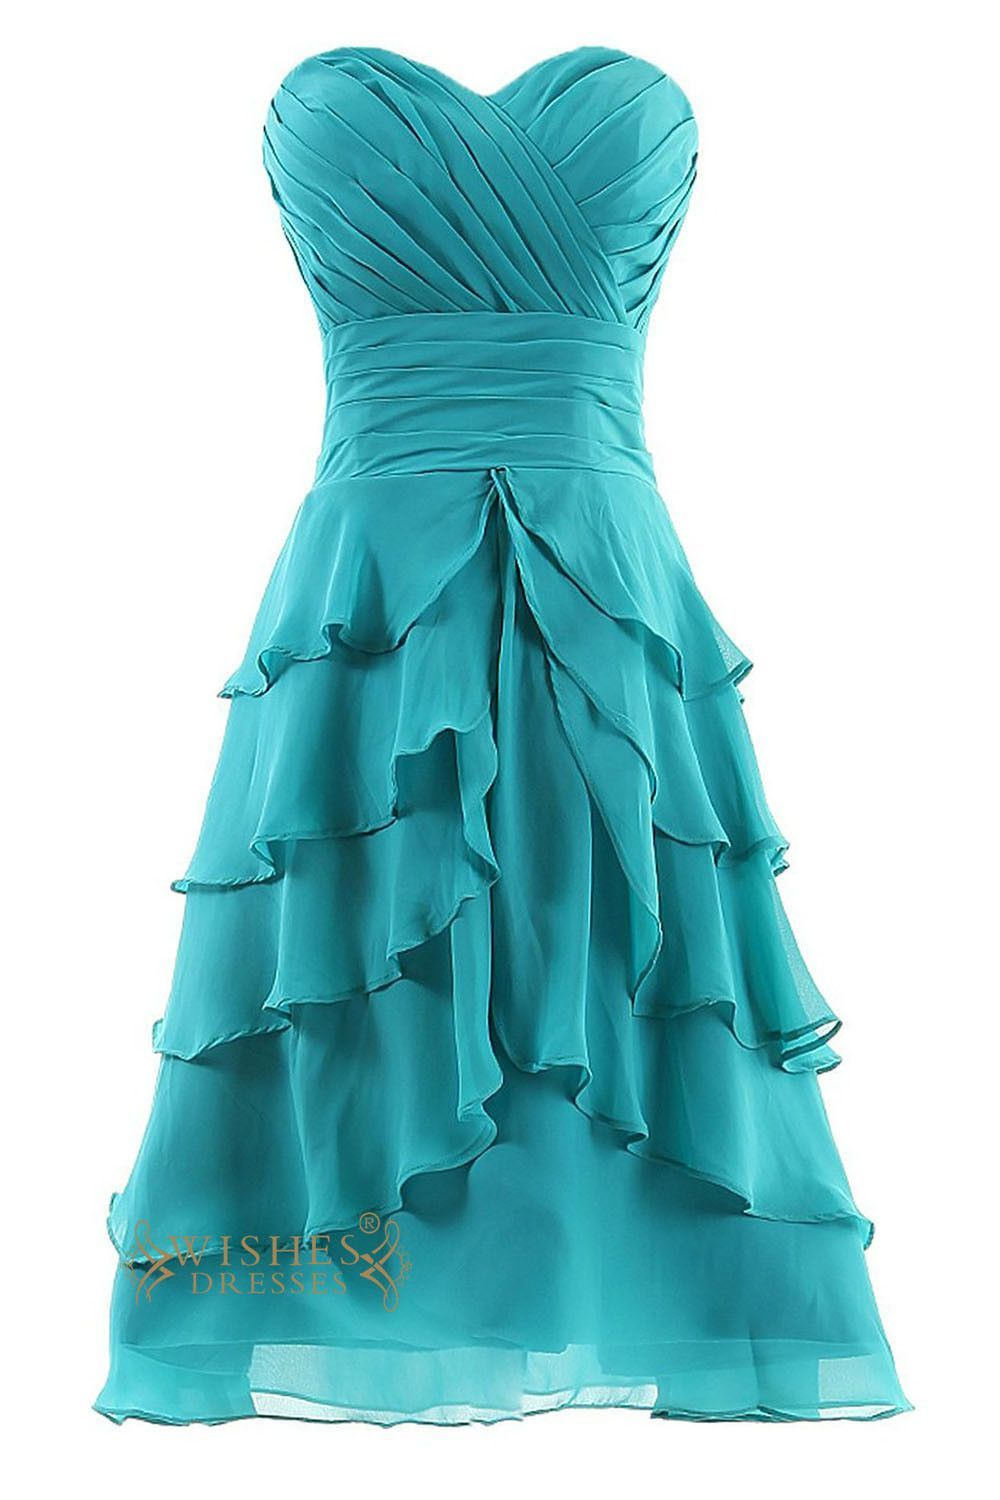 A-line Short Bridesmaid Dresses Am60 | Short homecoming dresses ...